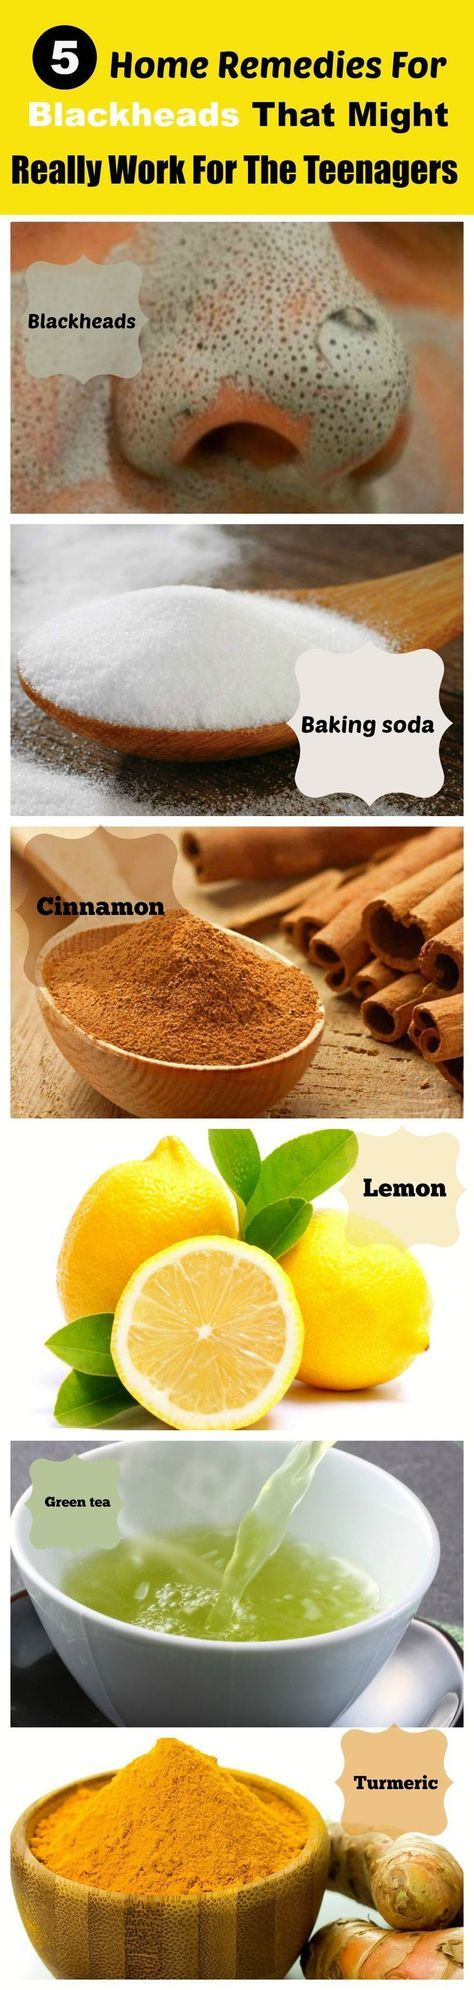 Home remedies that remove blackheads